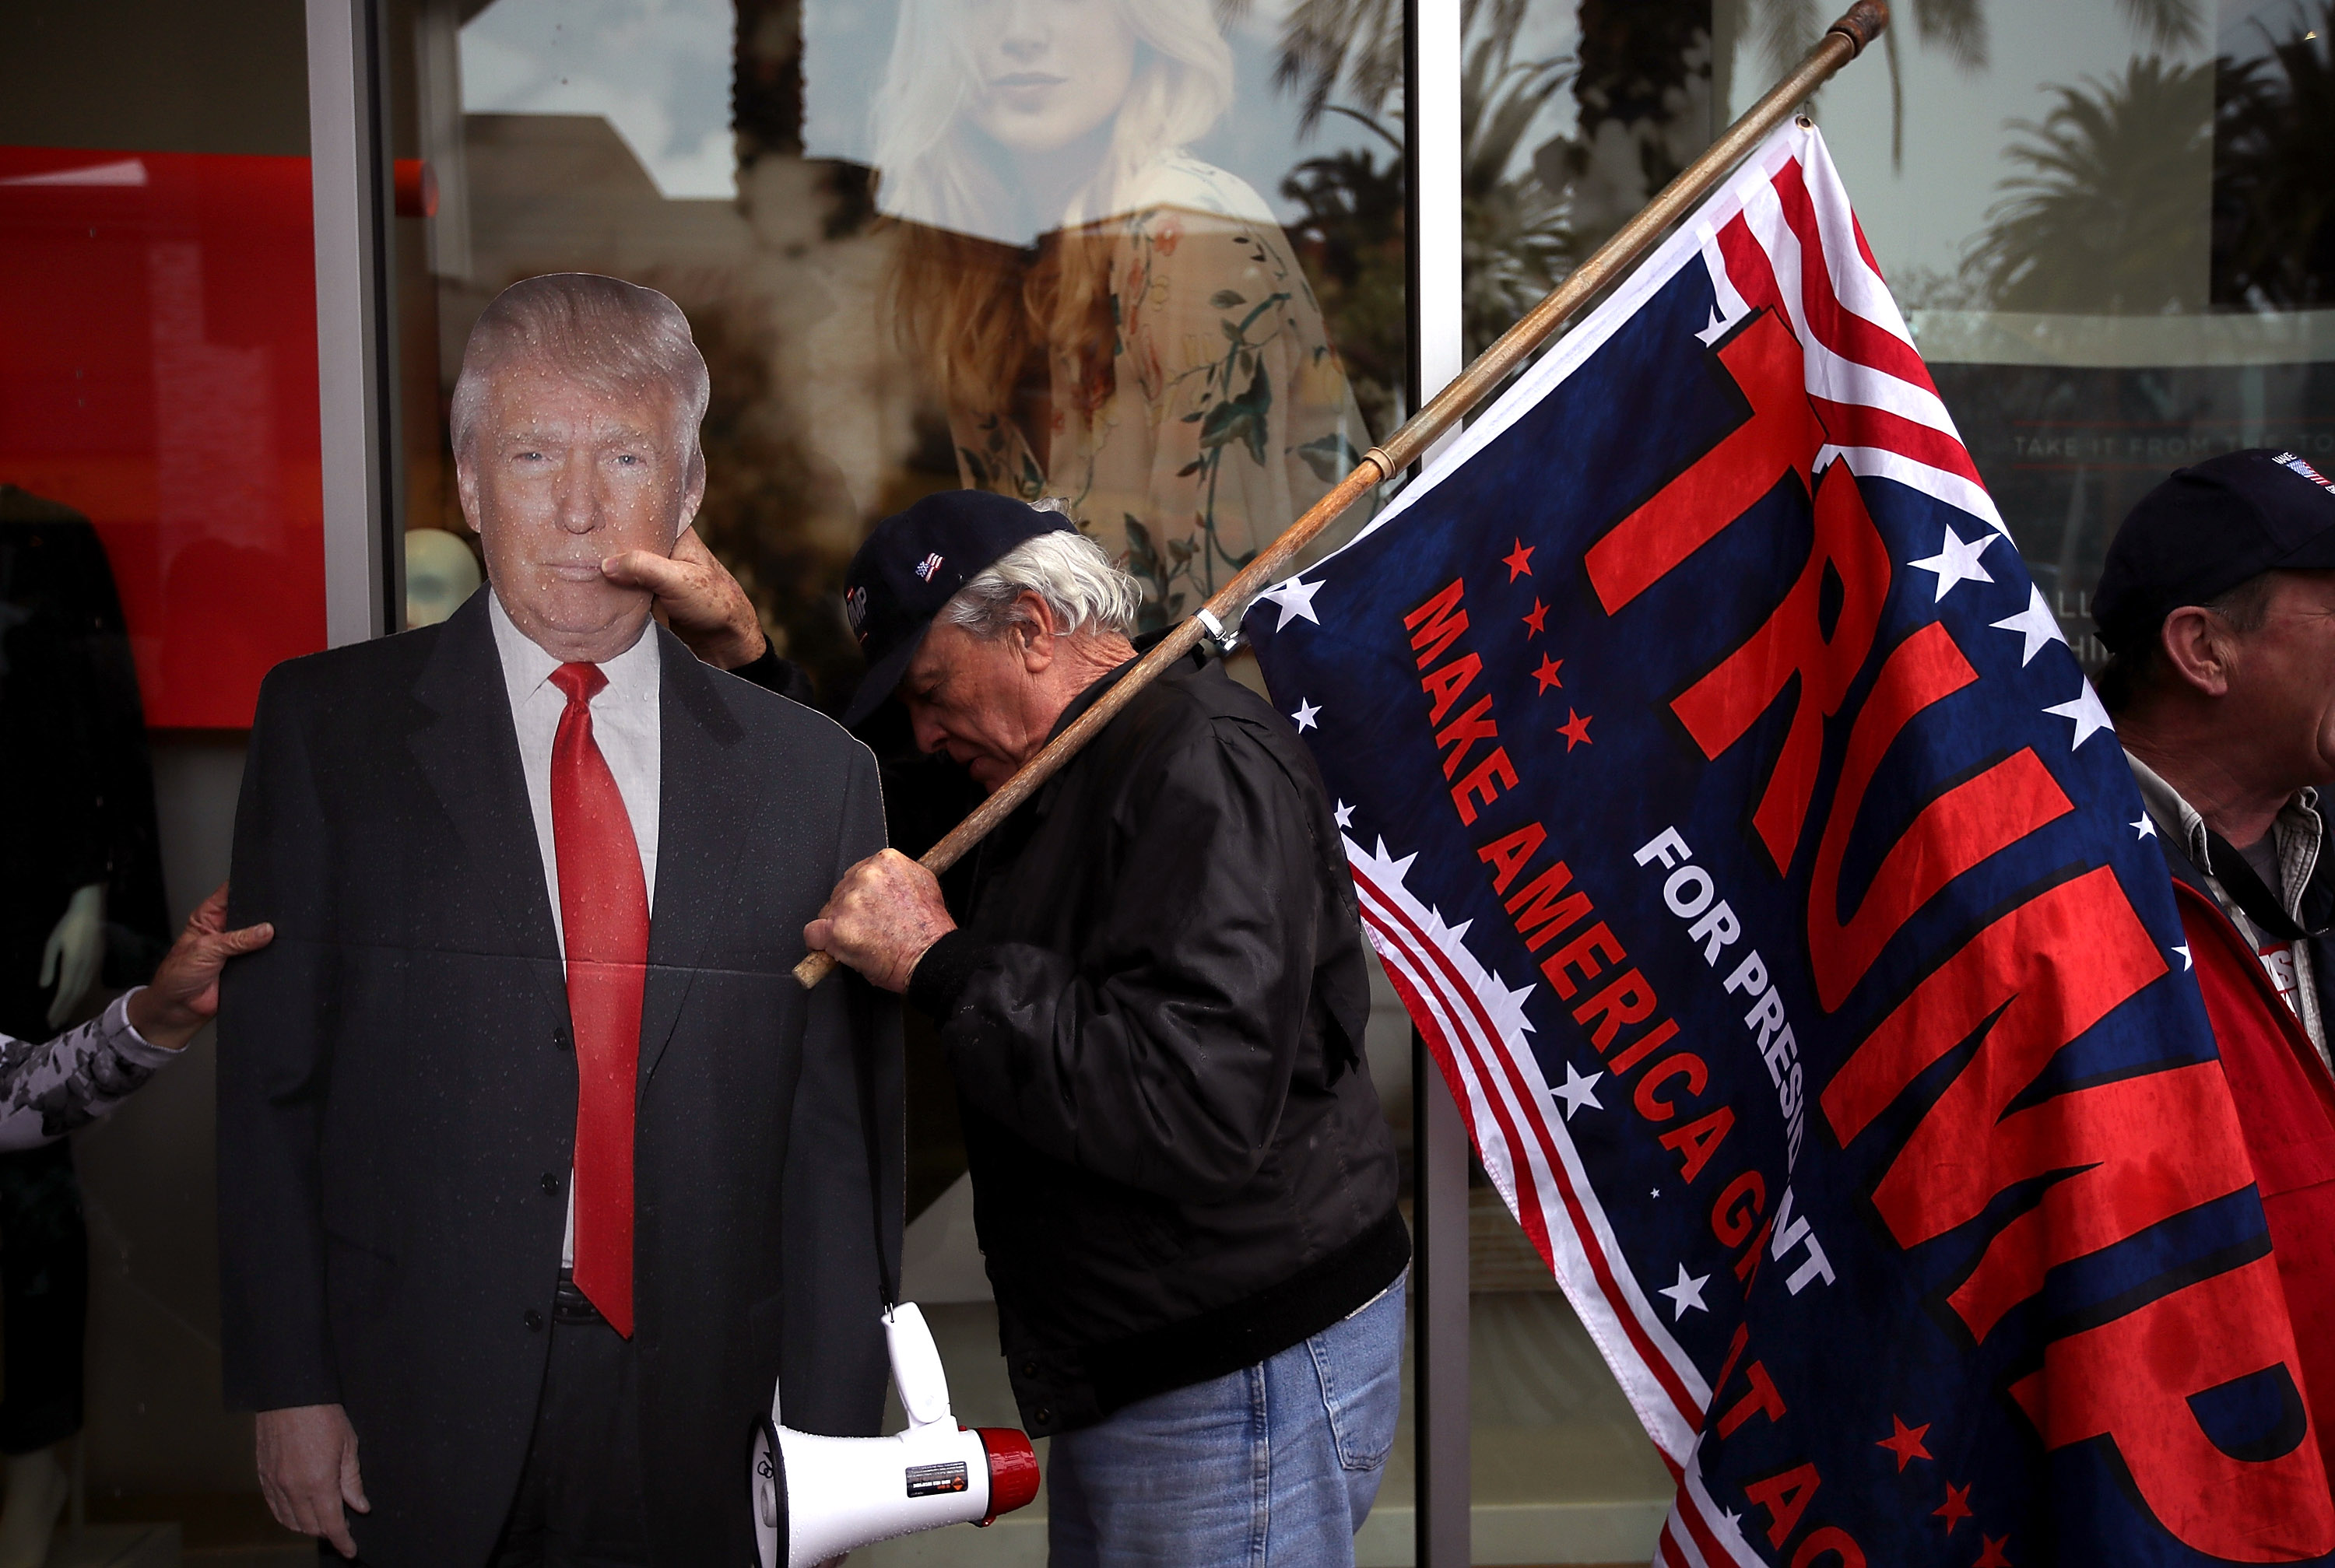 A supporter of U.S. President Donald Trump move a cardboard cut out of President Trump out of the rain during a rally in favor of the  America First  agenda on February 27, 2017 in Brea, California.